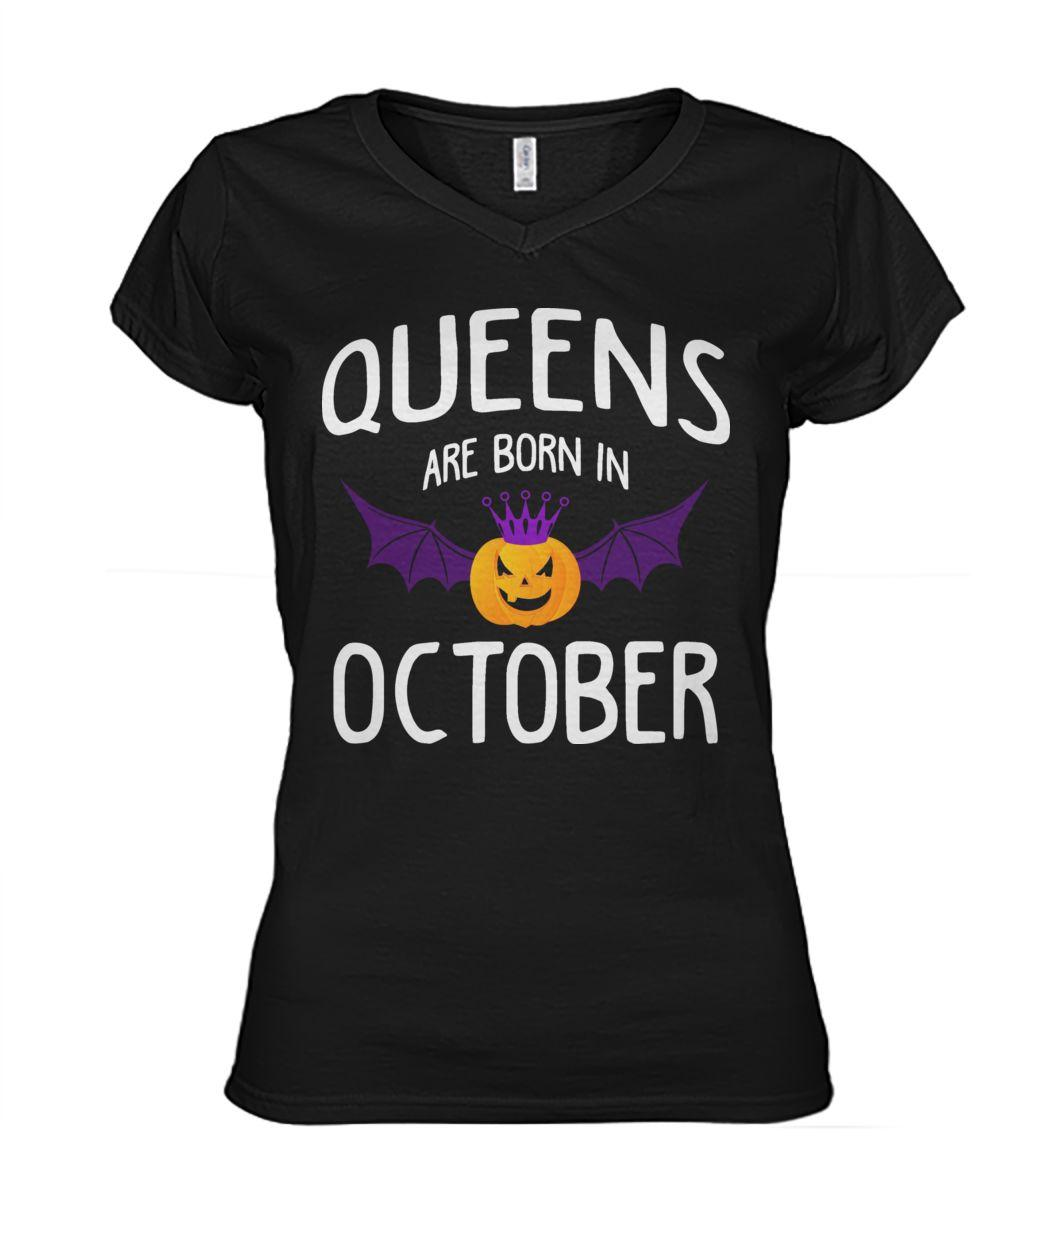 Official Queen Are Born In October Funny Pumpkin Bat Halloween V-neck t-shirt